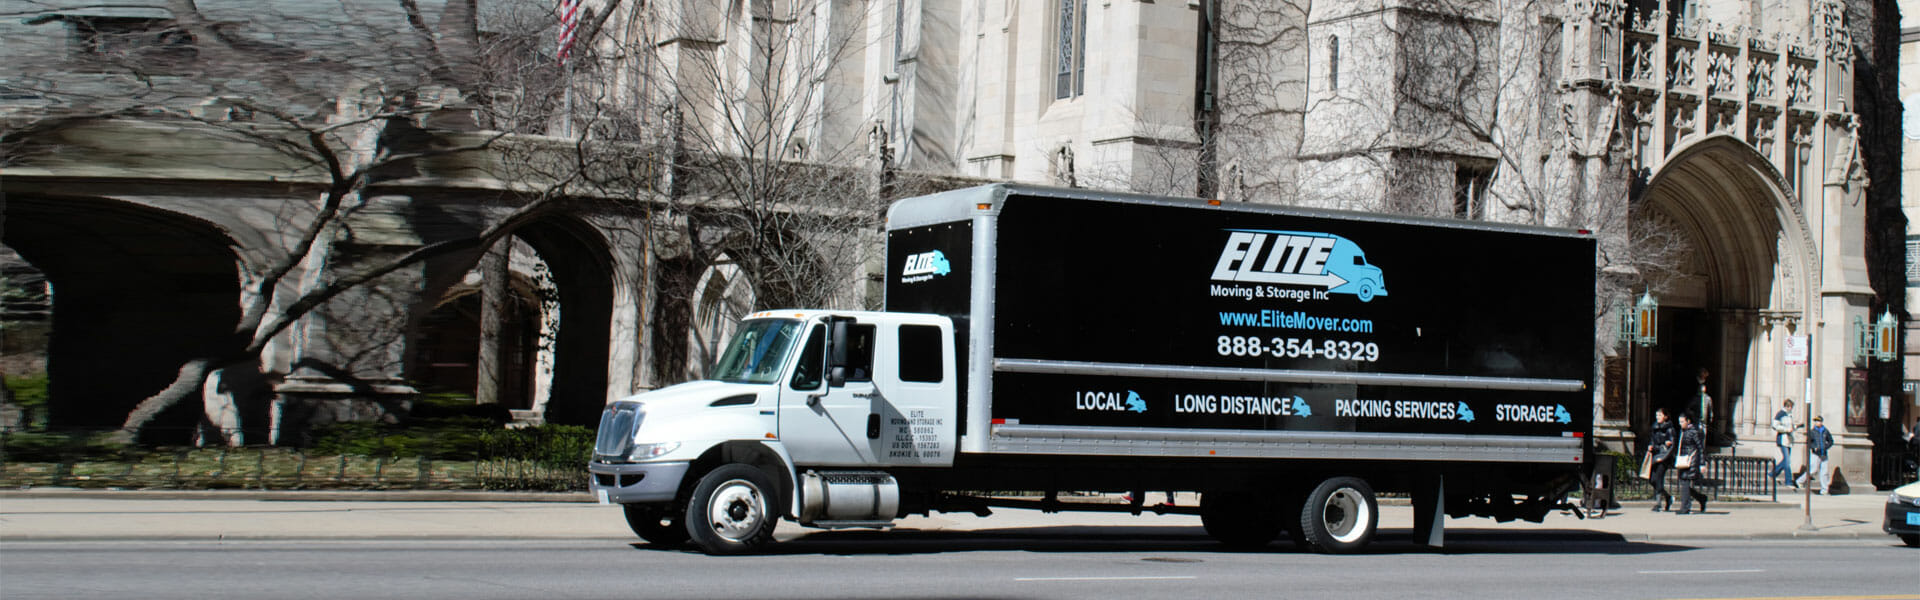 chicago local moving company